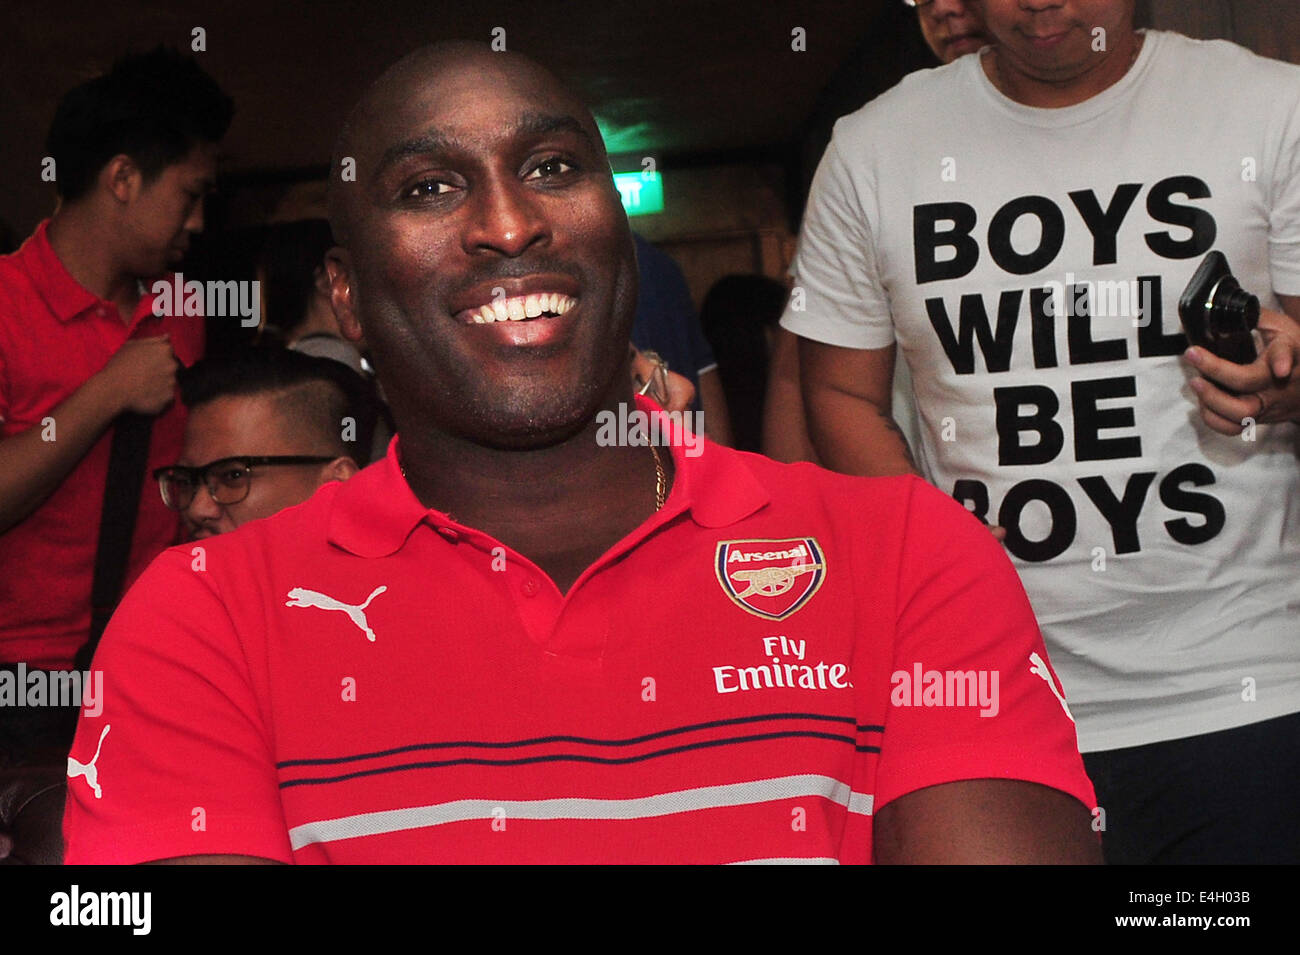 Singapore. 11th July, 2014. Former Arsenal player Sol Campbell attends the Arsenal's new kit launch in Singapore, - Stock Image